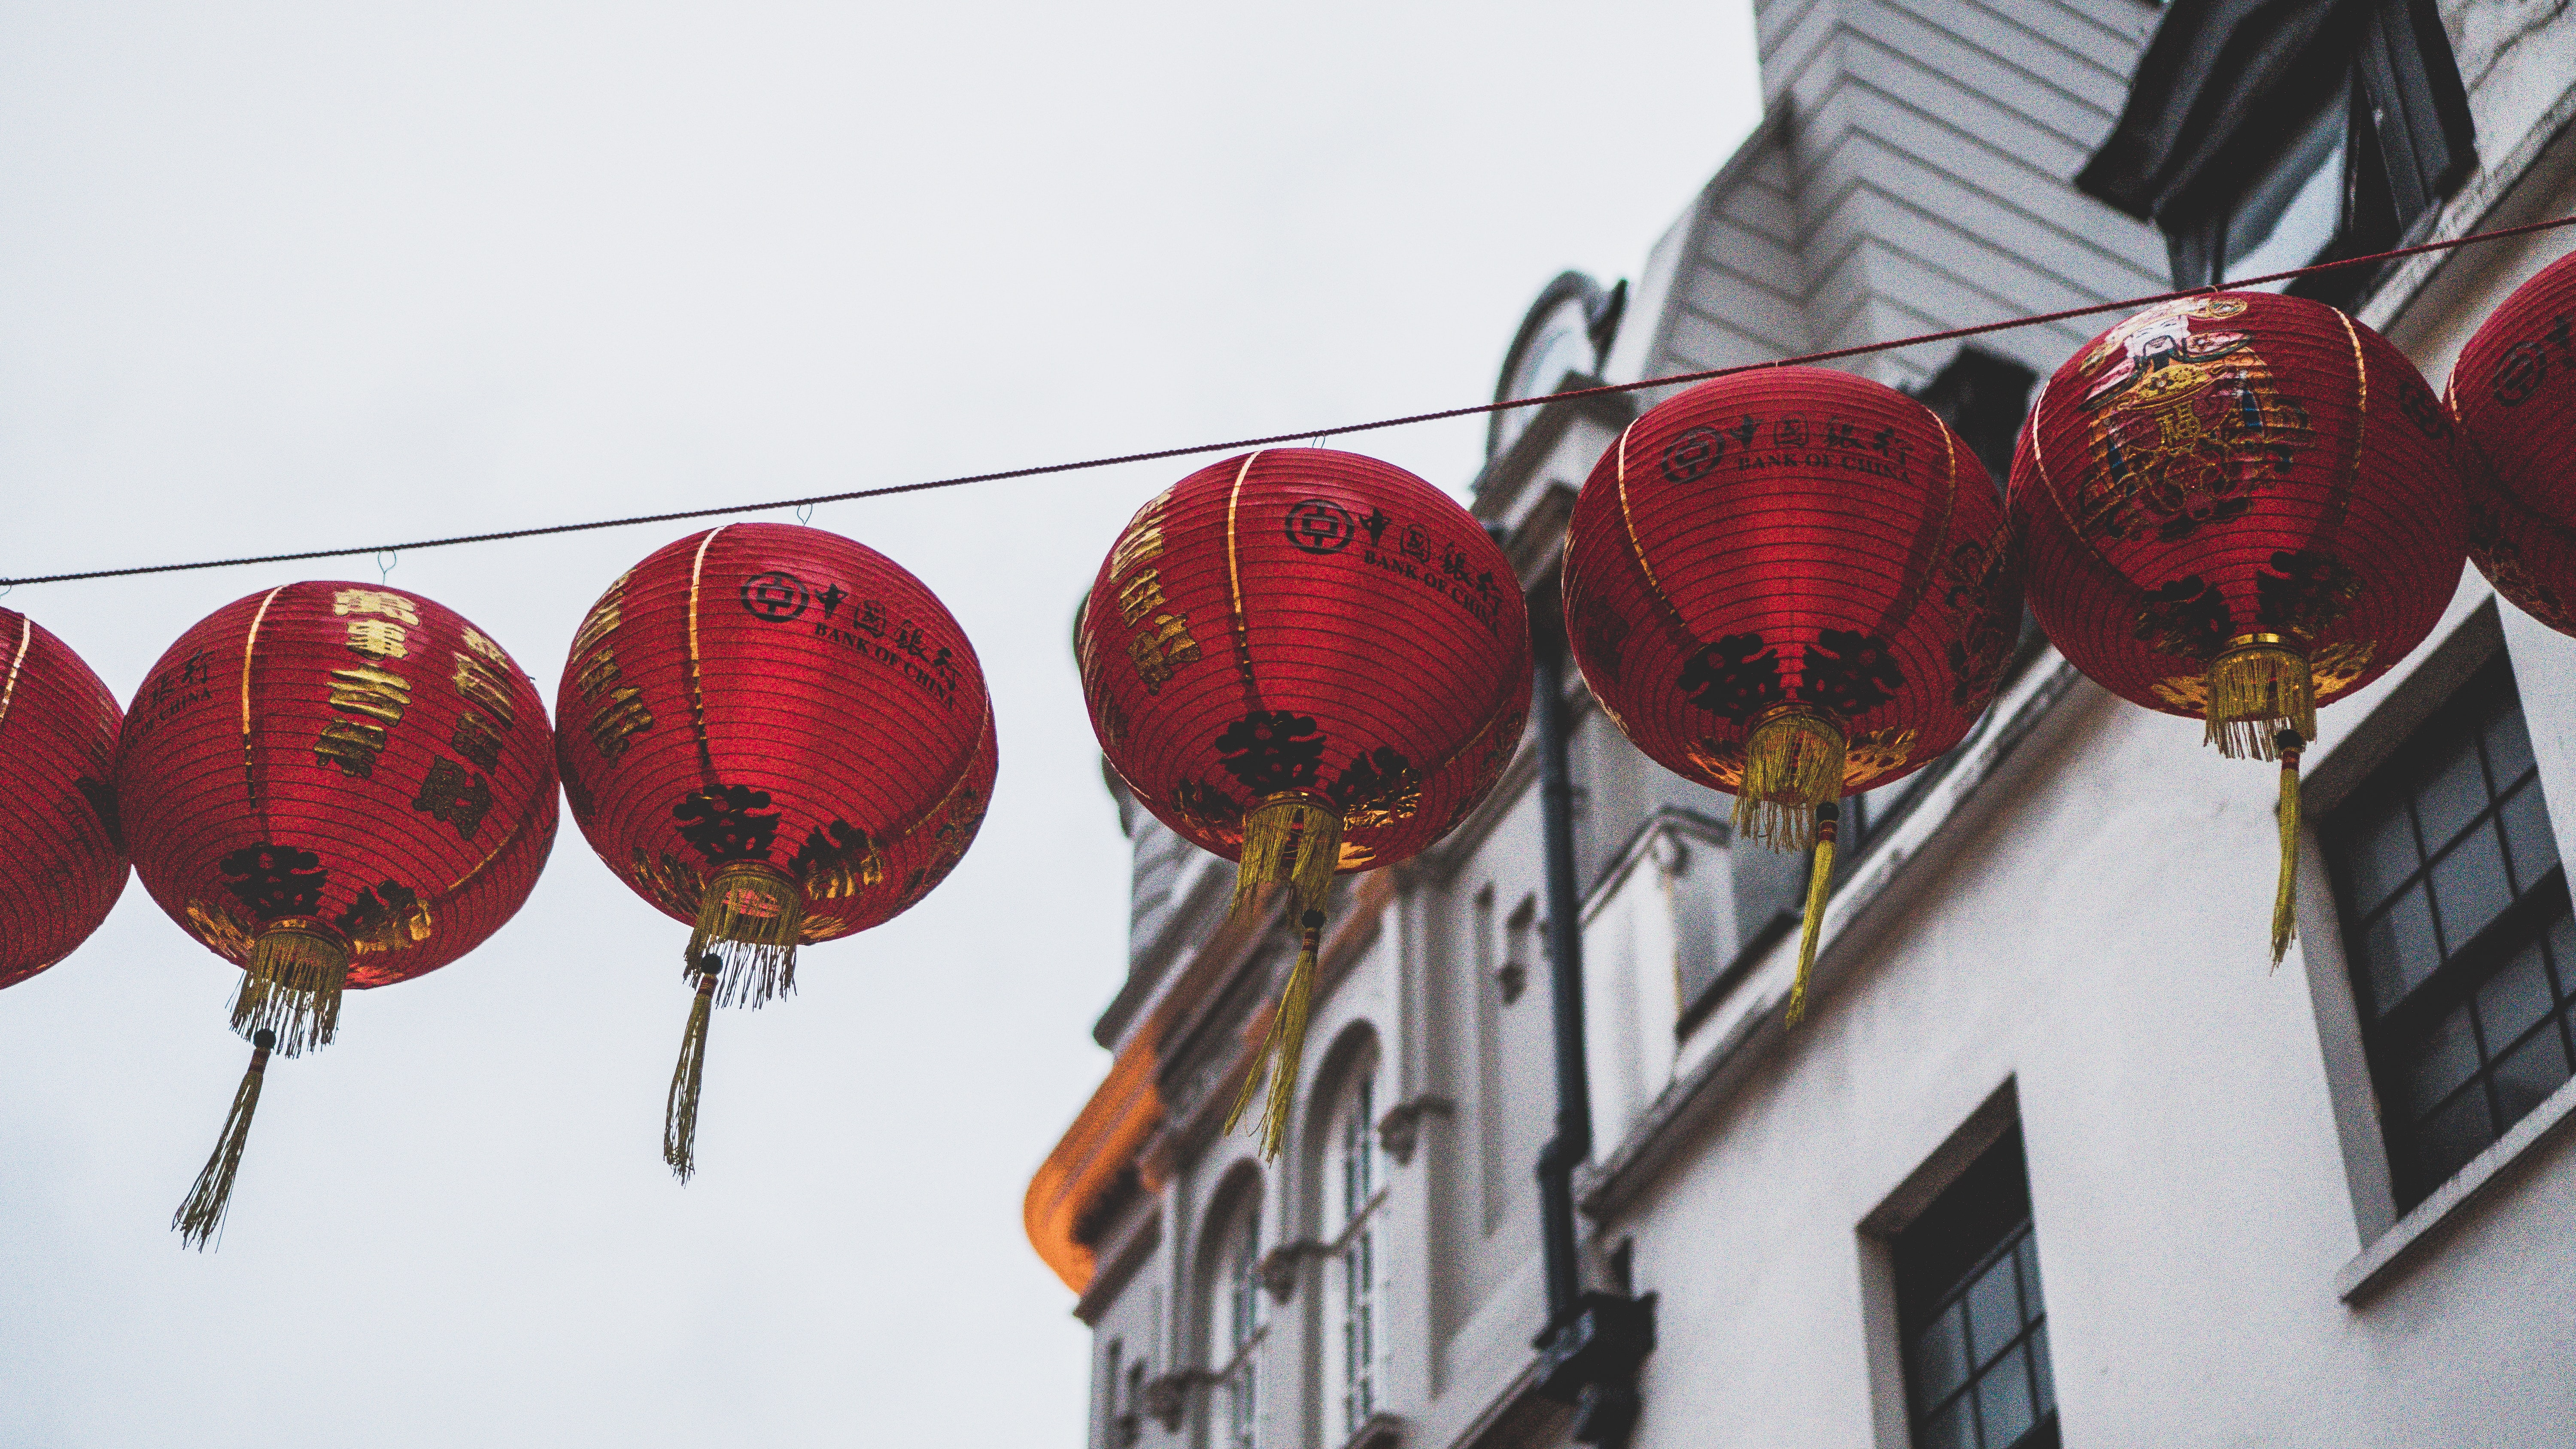 Row of red Chinese lanterns hanging above a street.